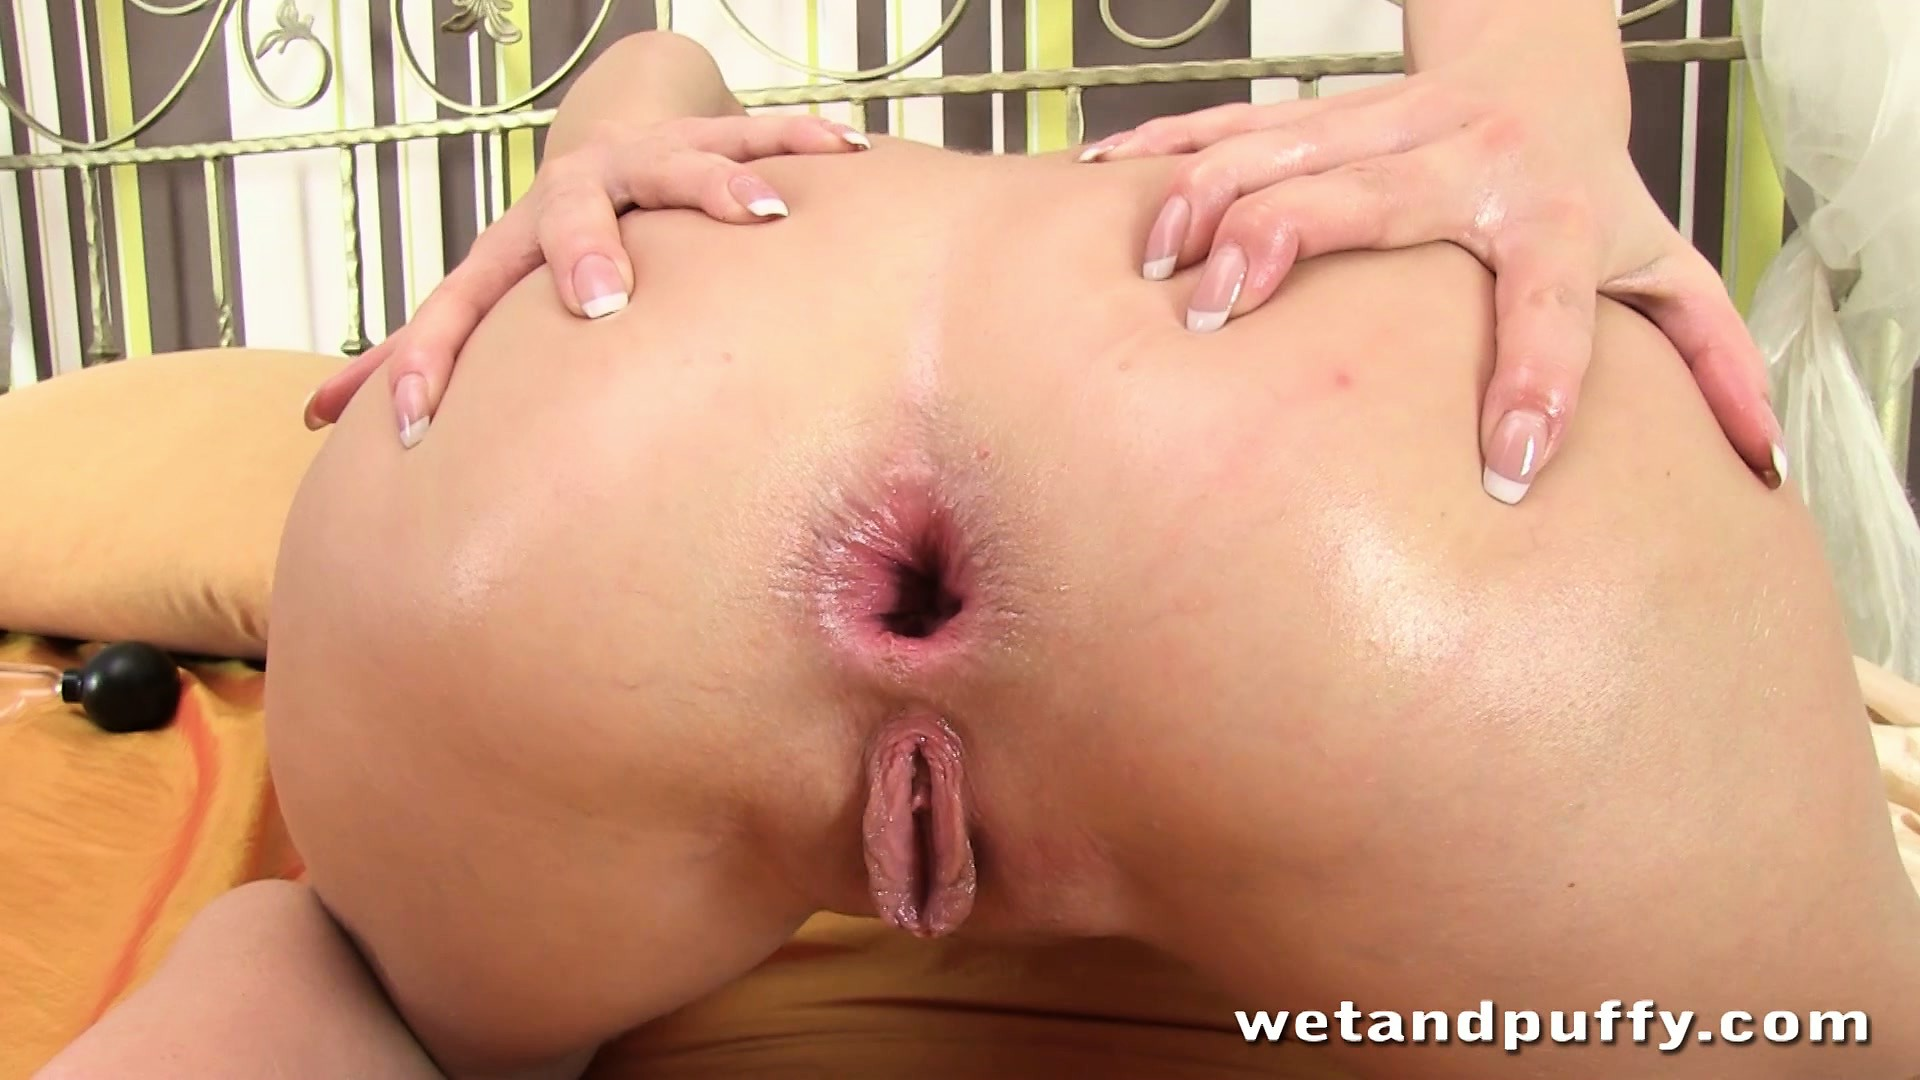 Porn Tube of Her Once Tight Ass Twitches Open After She's Done Brutalizing It